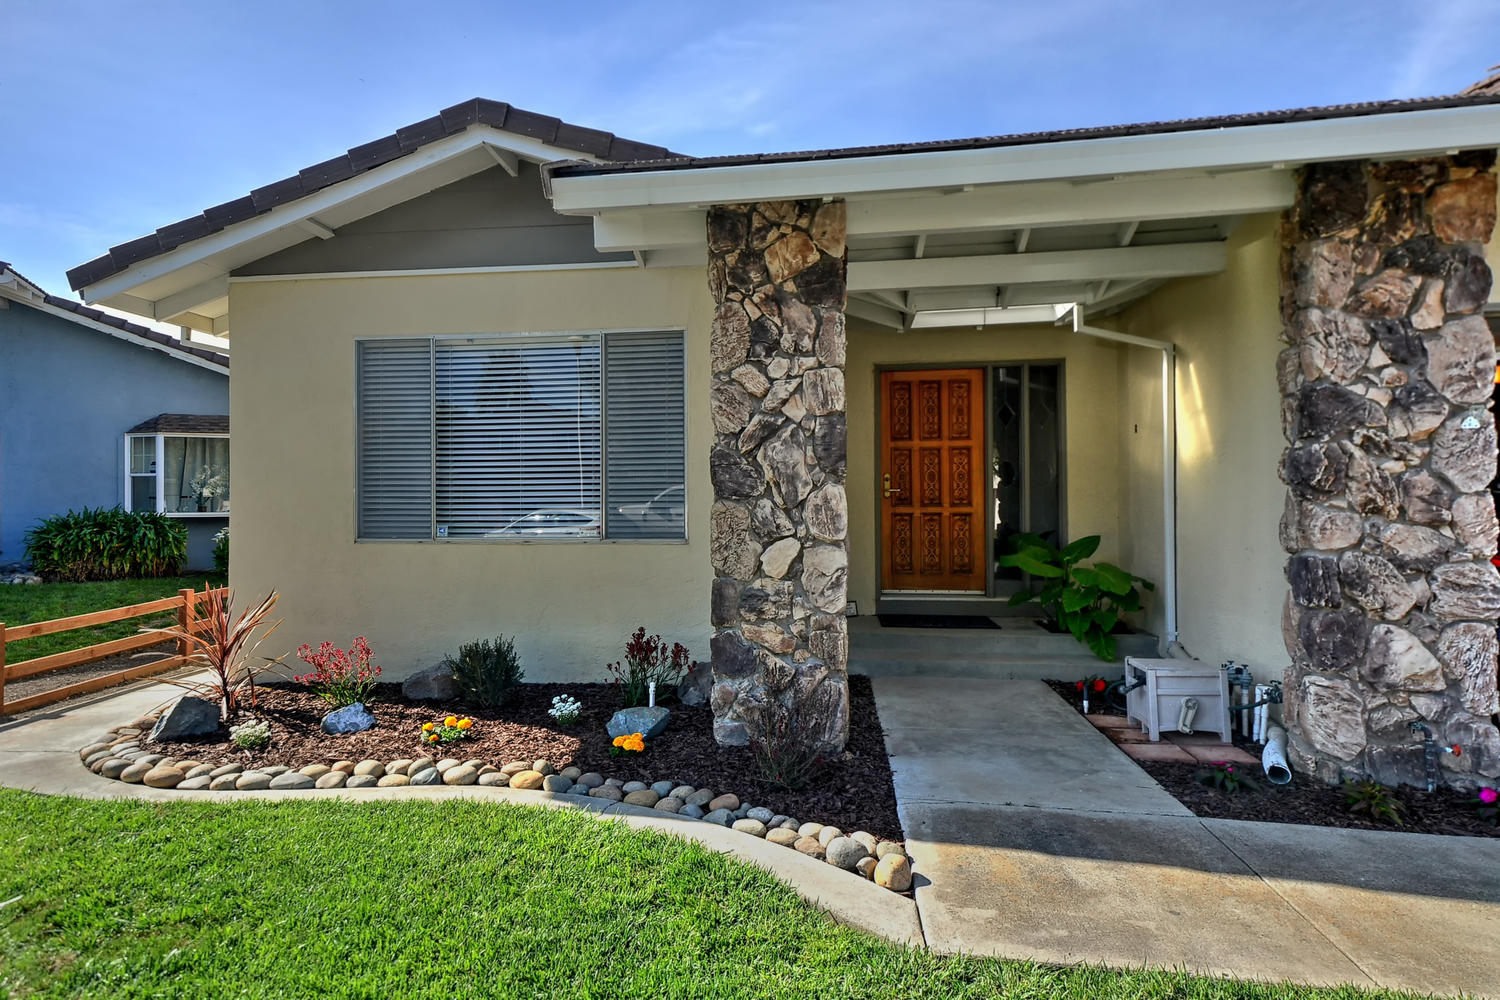 Single Family Home for Sale at 1239 Casa Marcia Place Fremont, California 94539 United States